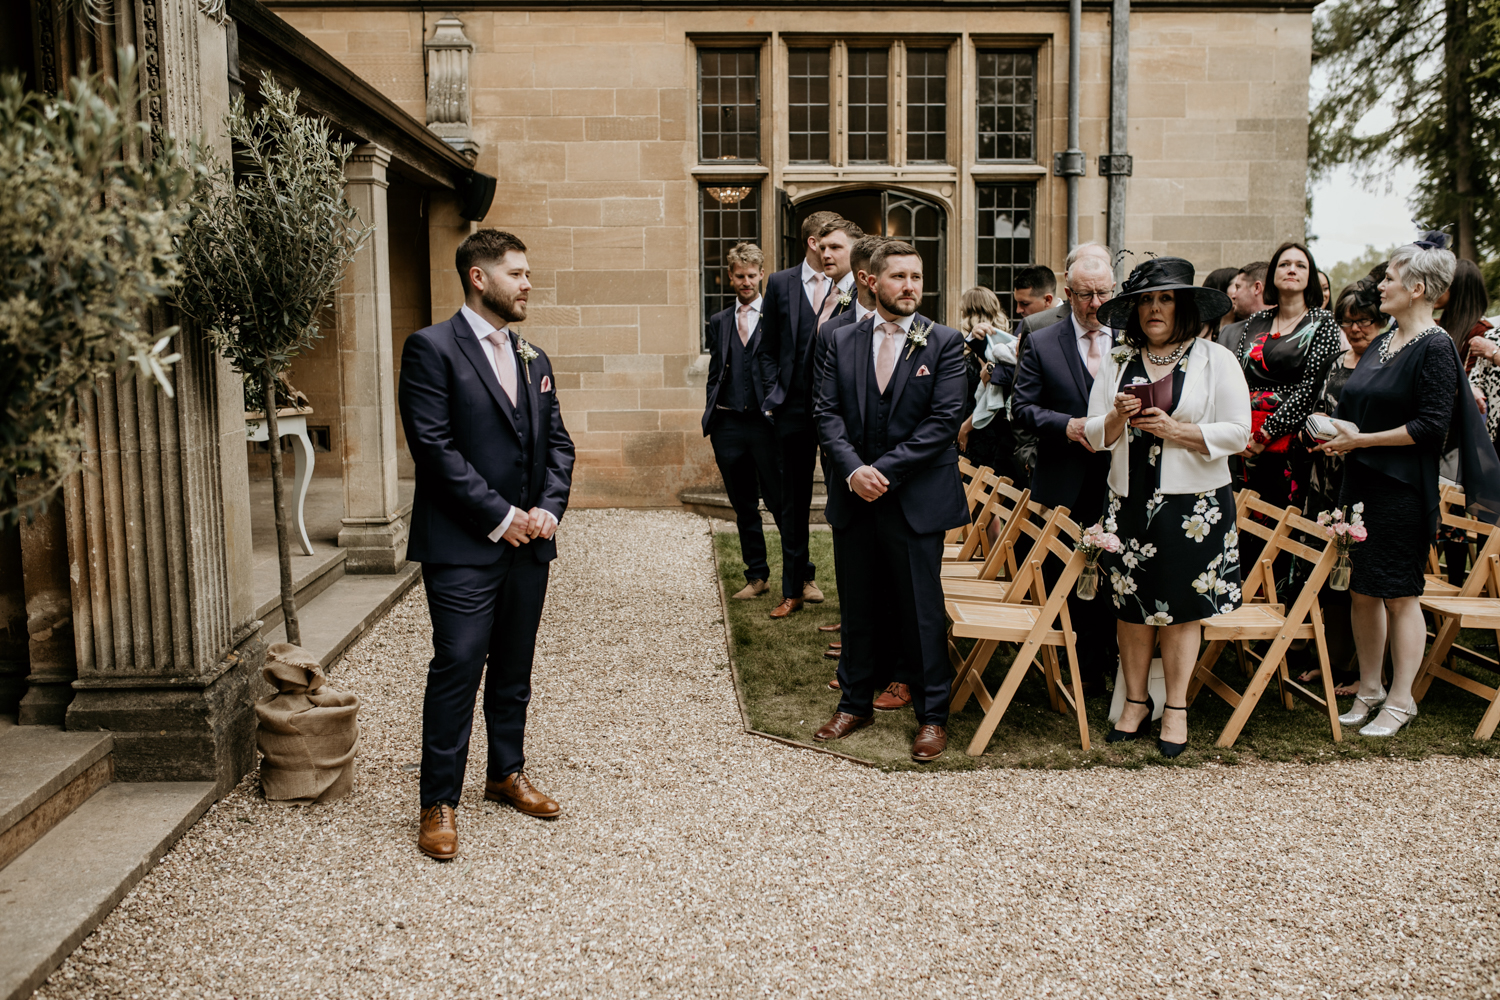 groom waiting for bride for their outdoor wedding ceremony at Coombe Lodge Blagdon wedding